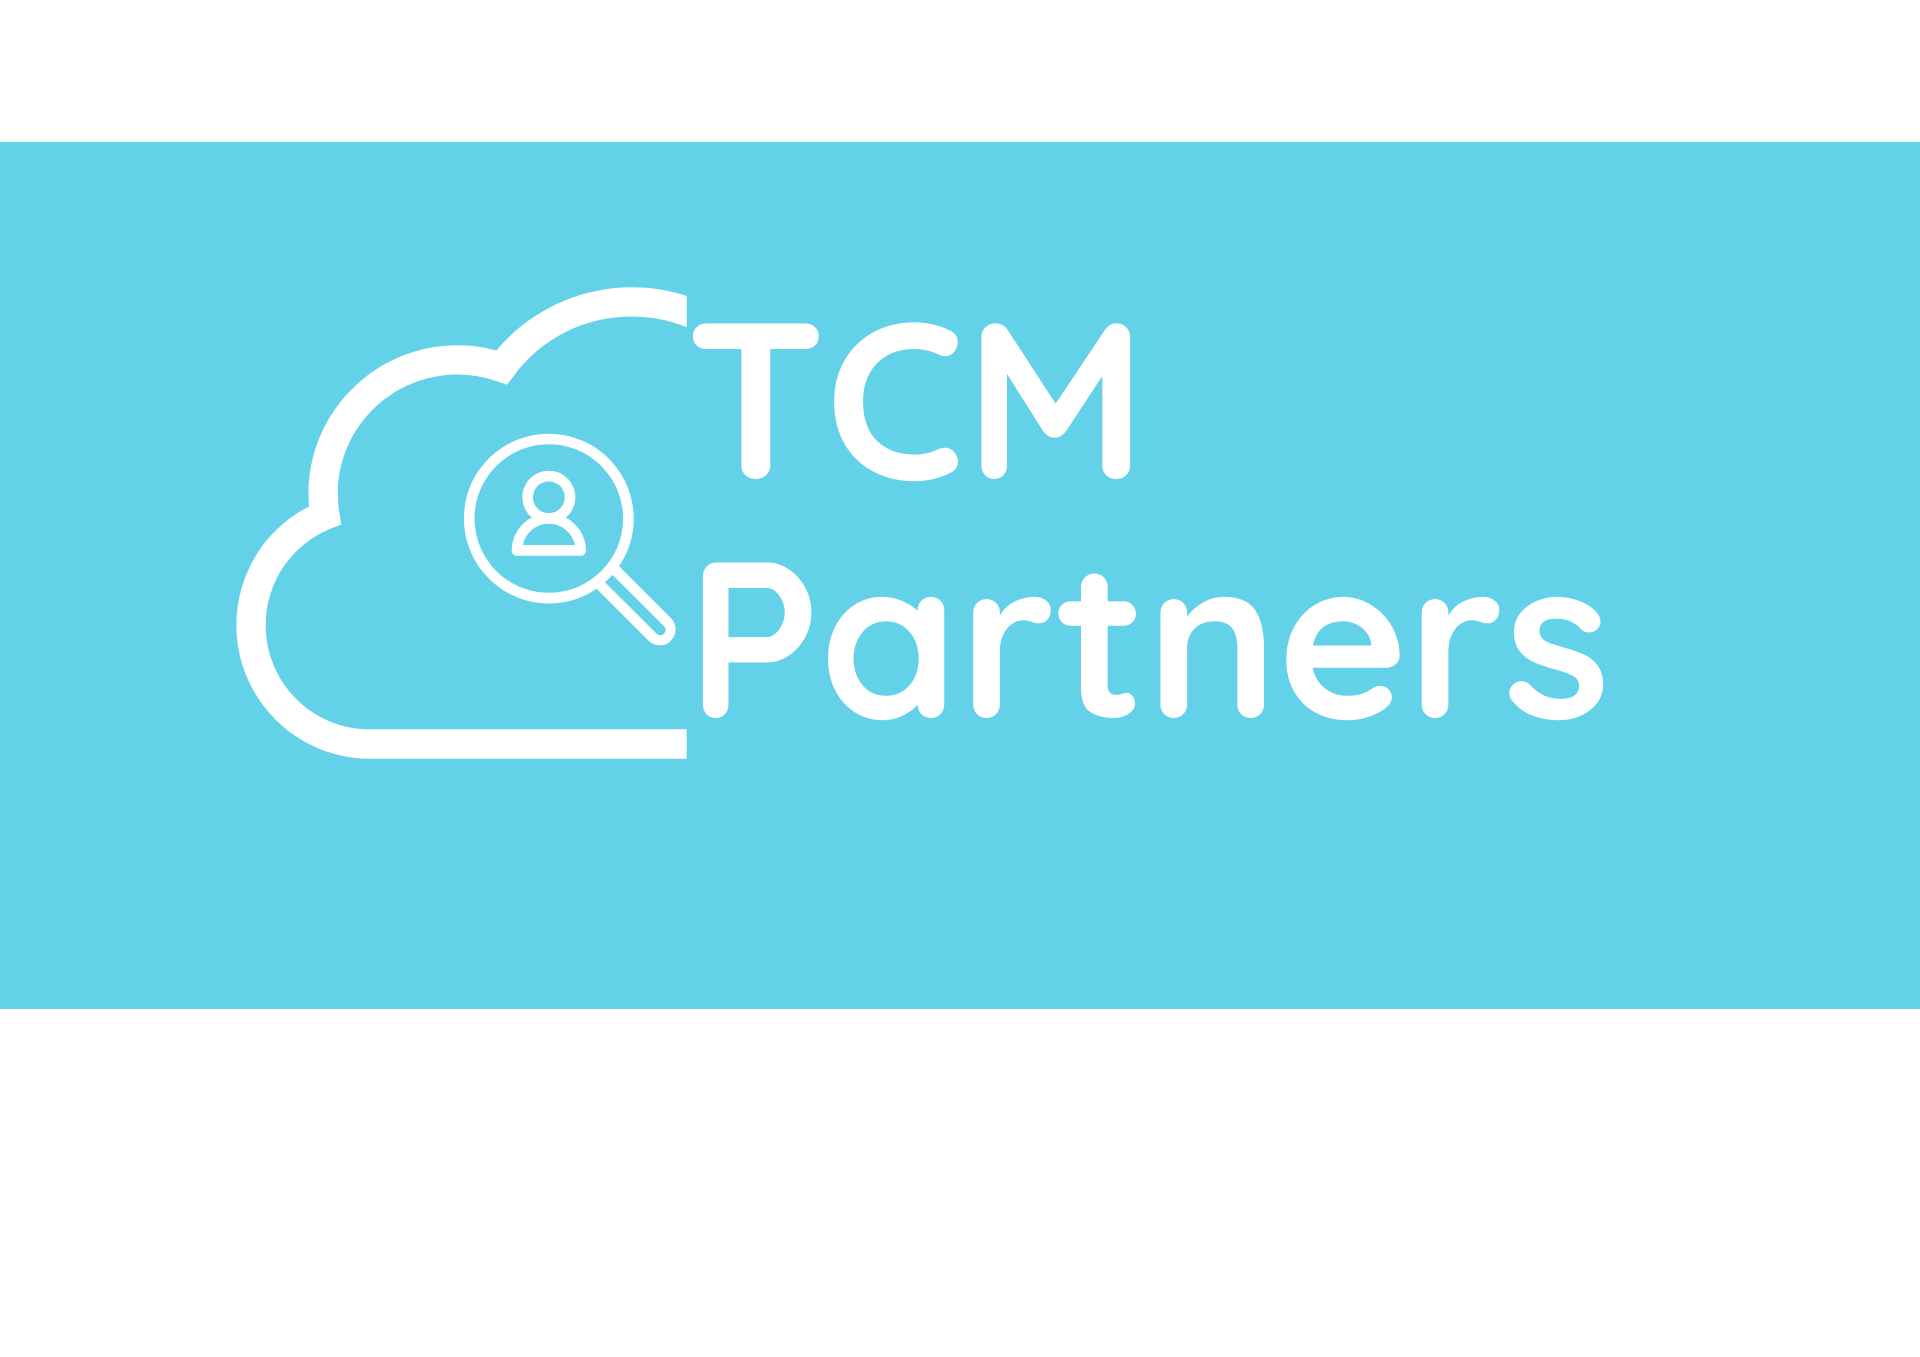 Total Change Management Partners